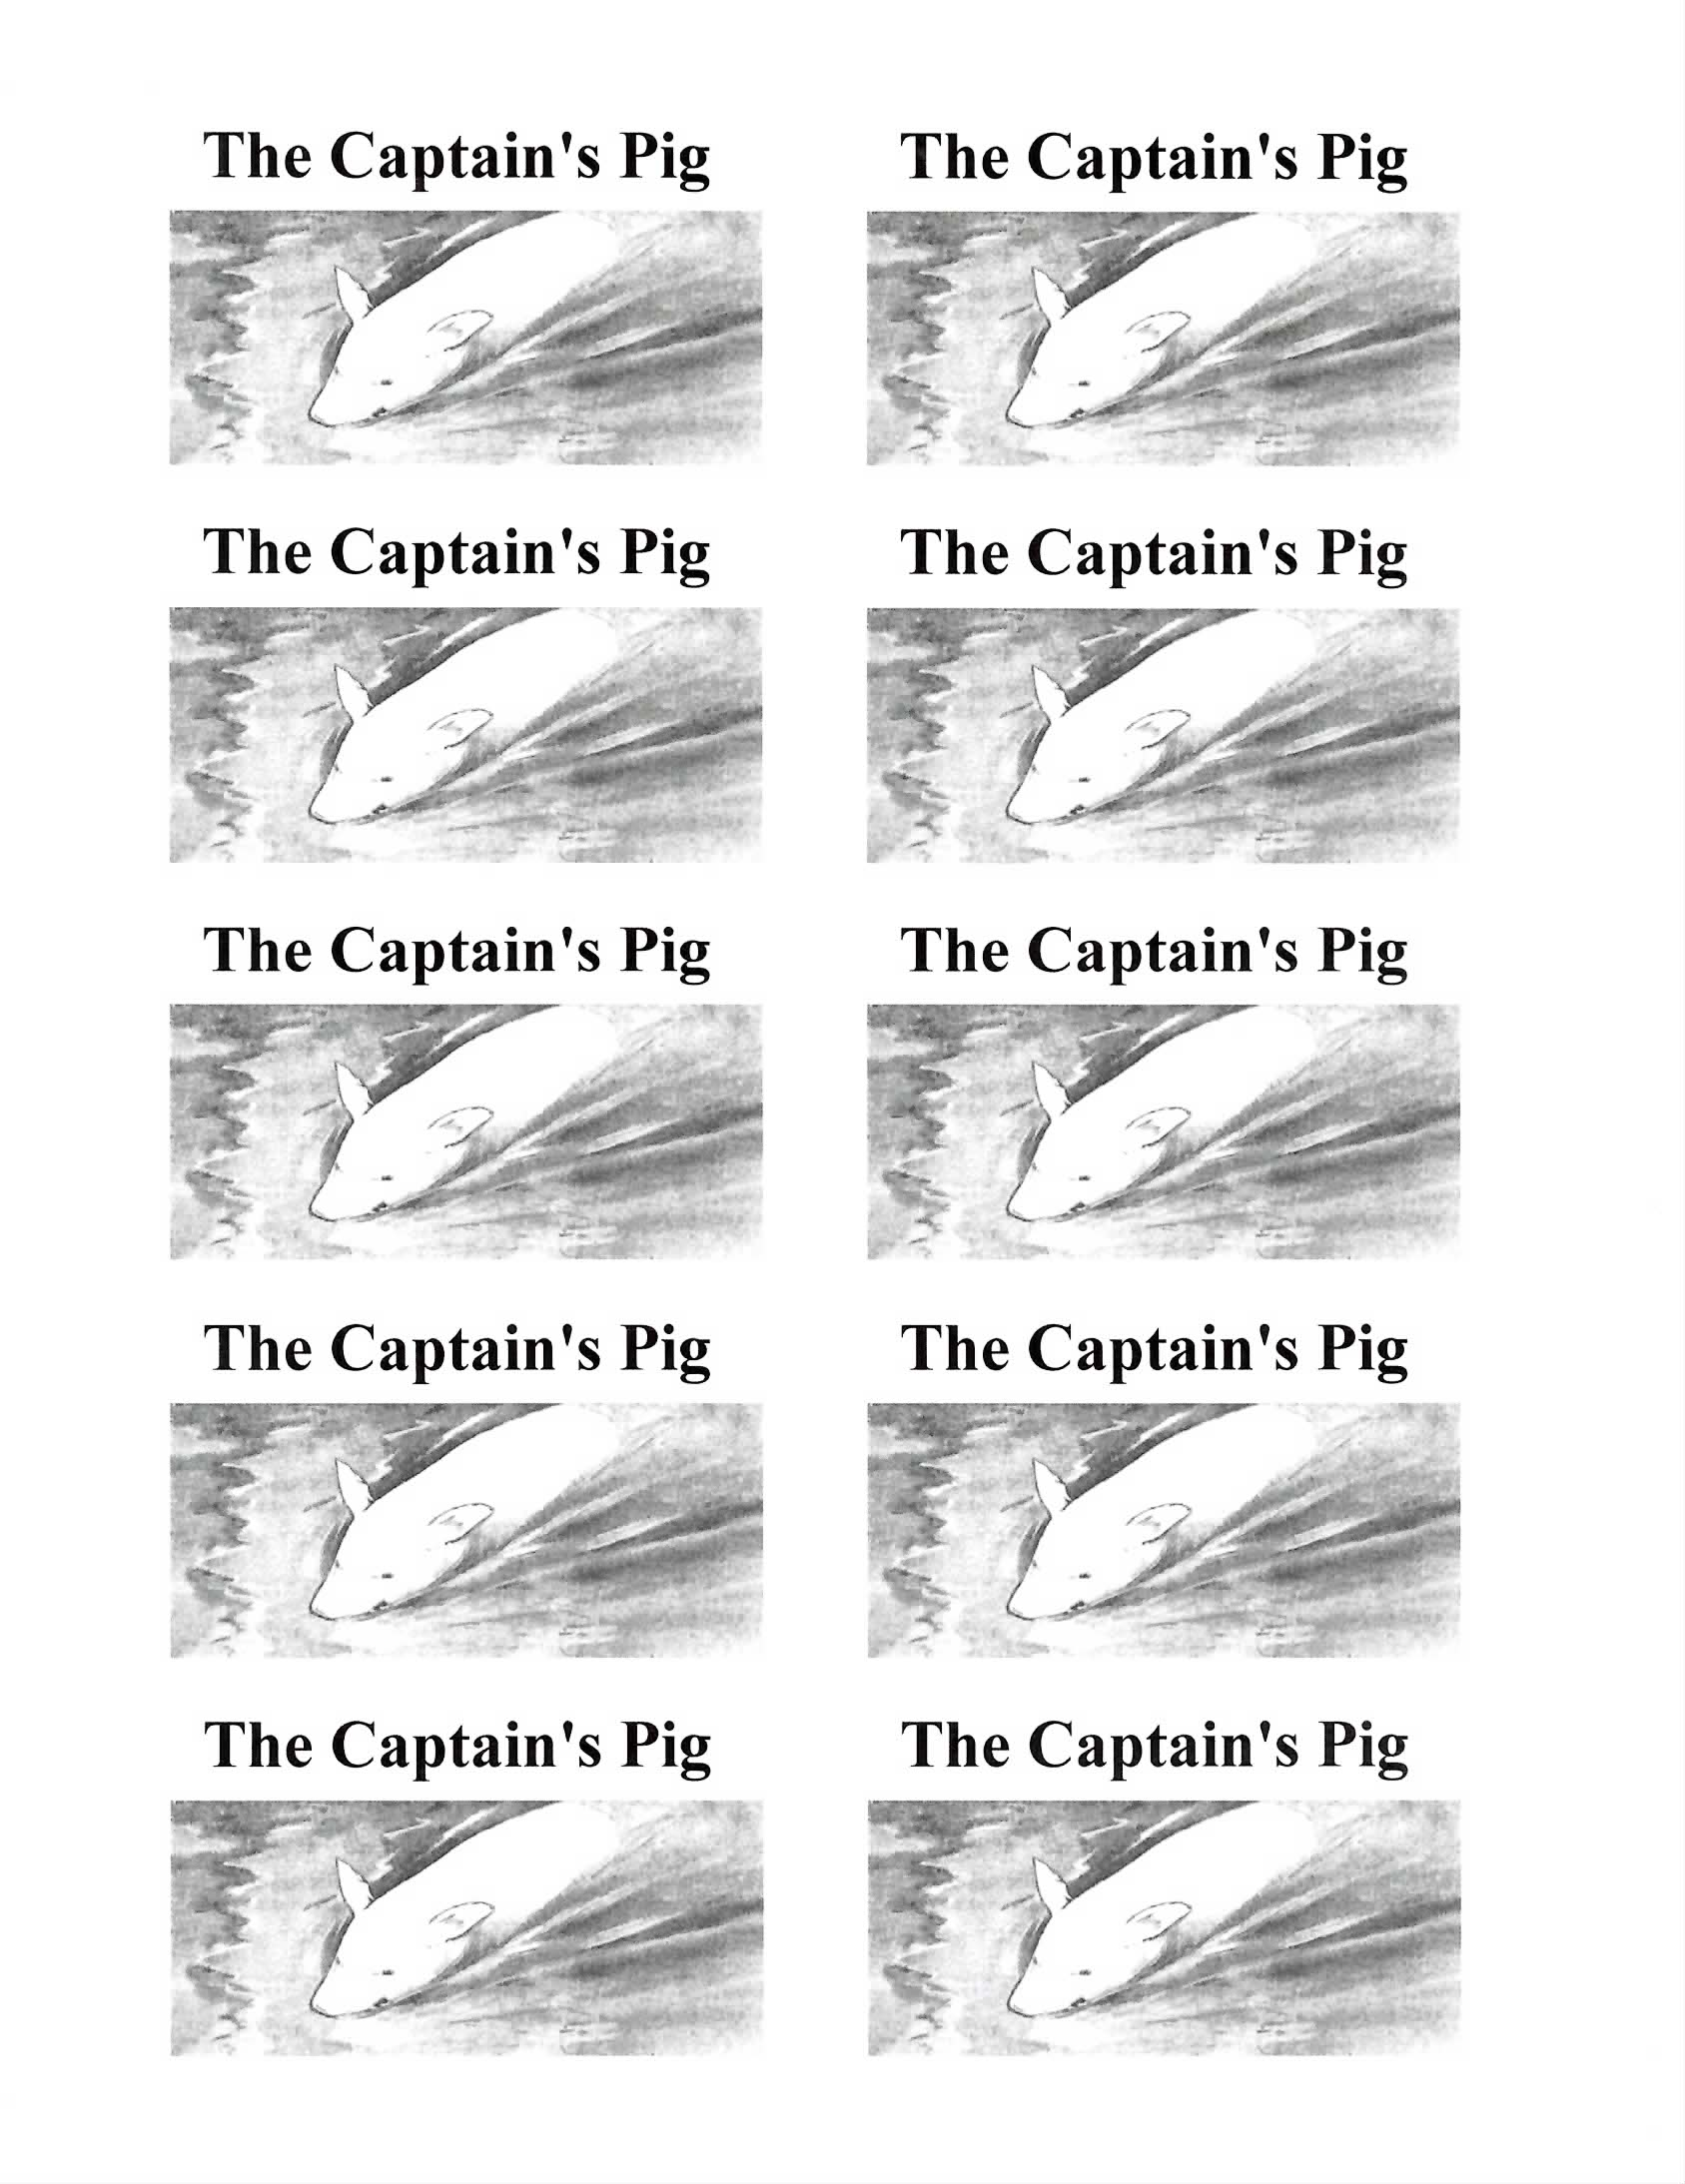 The Captain's Pig